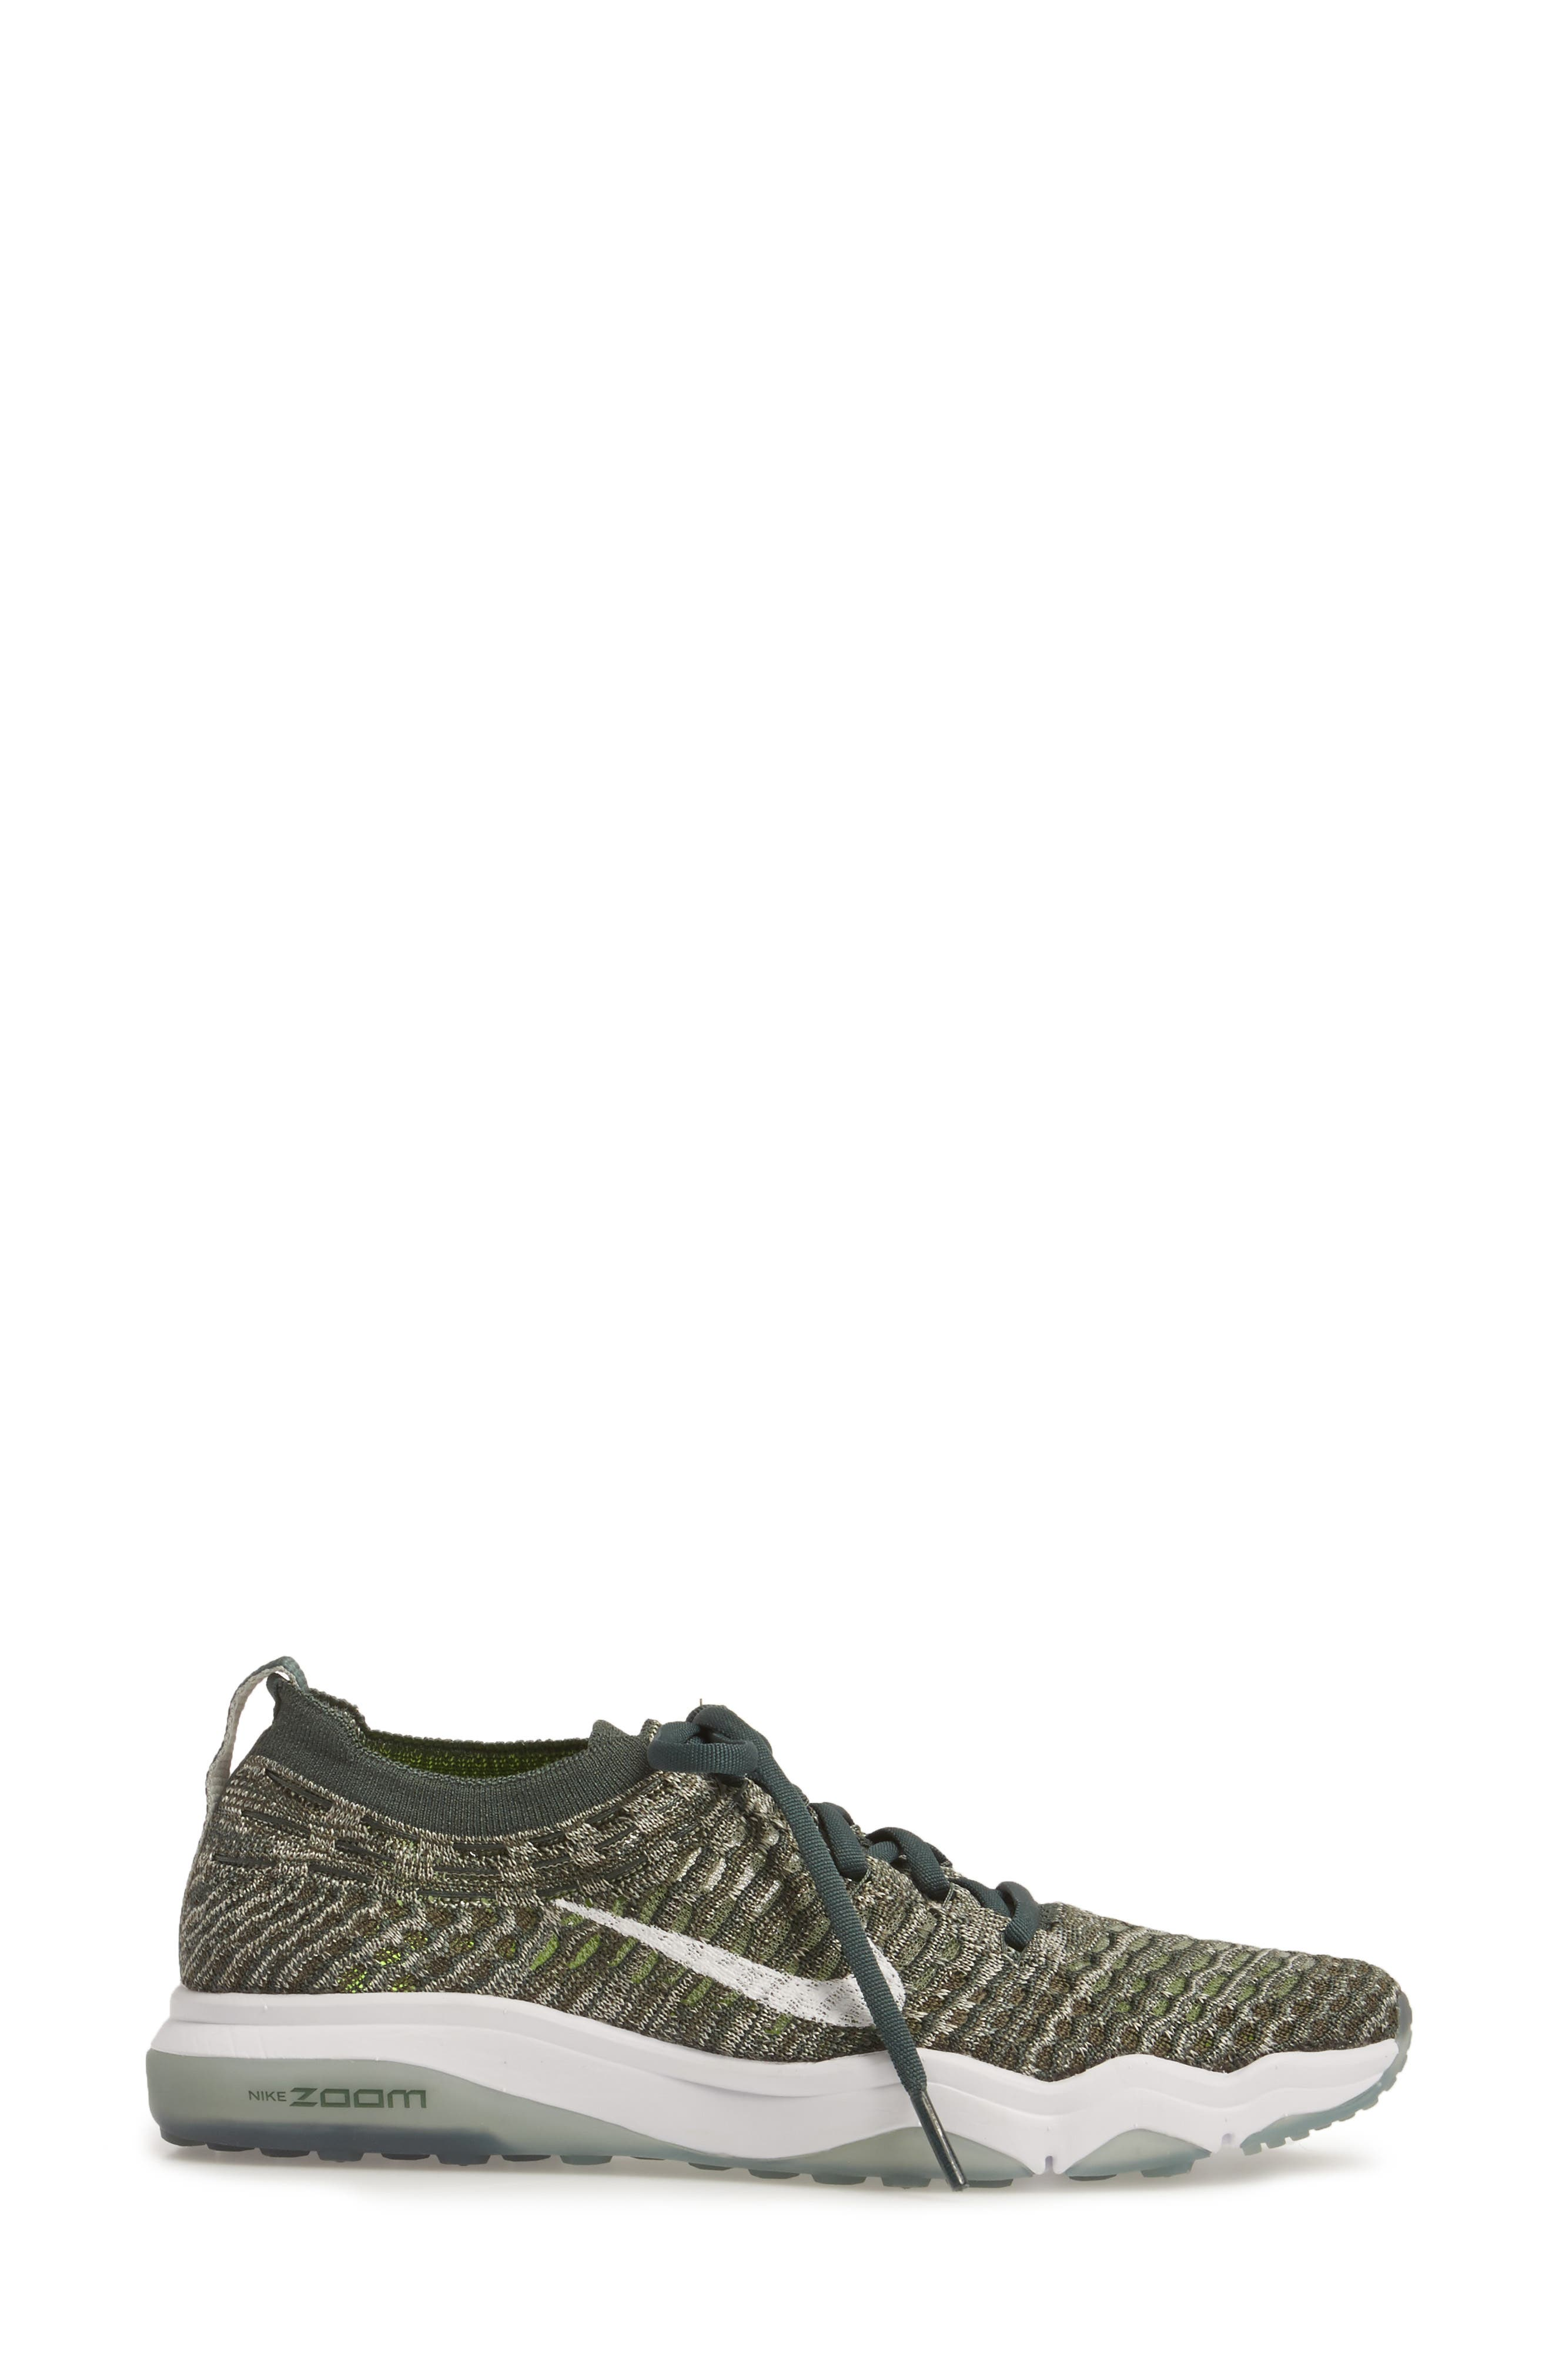 Air Zoom Fearless Flyknit Training Shoe,                             Alternate thumbnail 25, color,